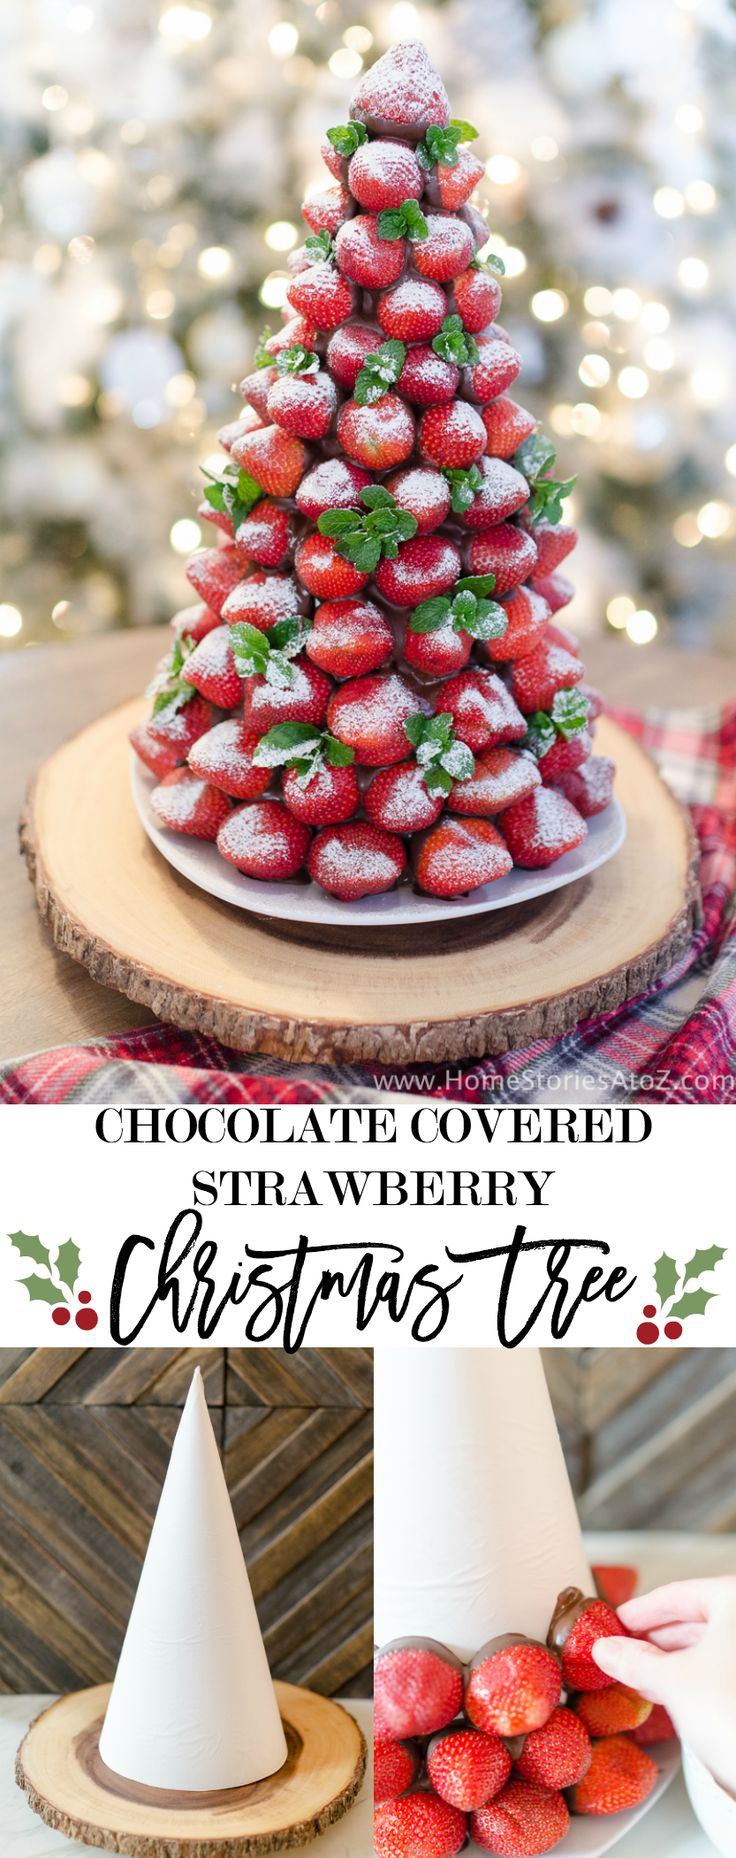 Christmas dessert table decoration ideas - Christmas Desserts Chocolate Covered Strawberry Christmas Tree Home Stories A To Z